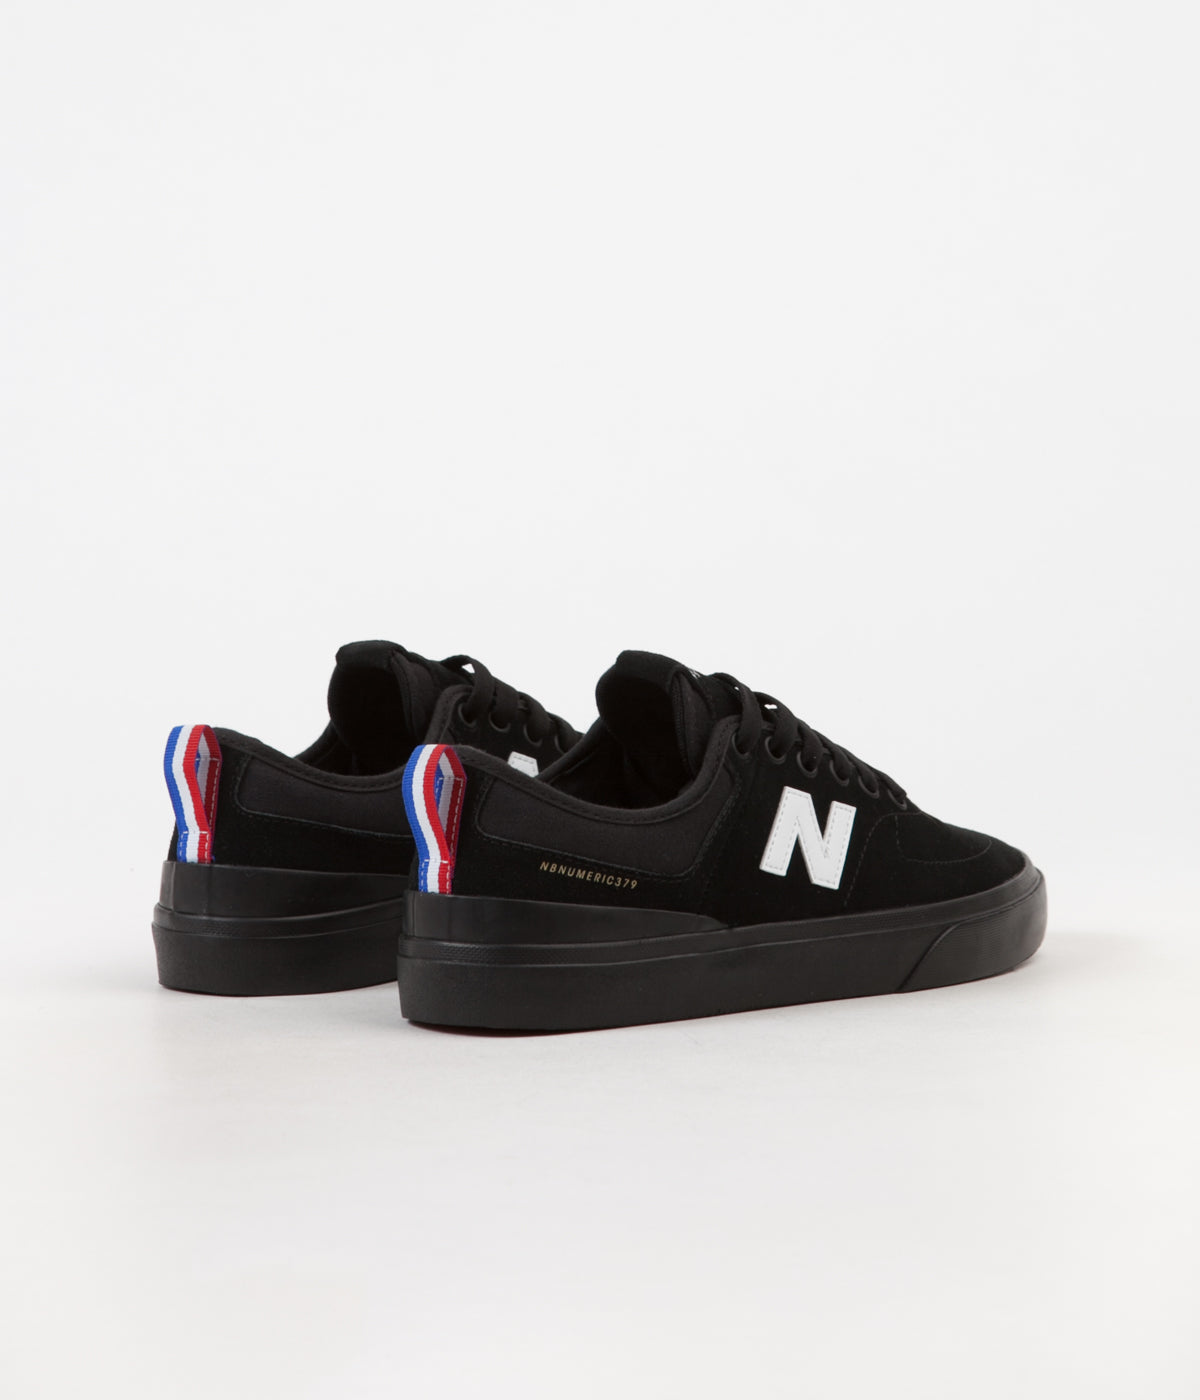 New Balance Numeric 379 Shoes - Black / White - Flo Mirtain